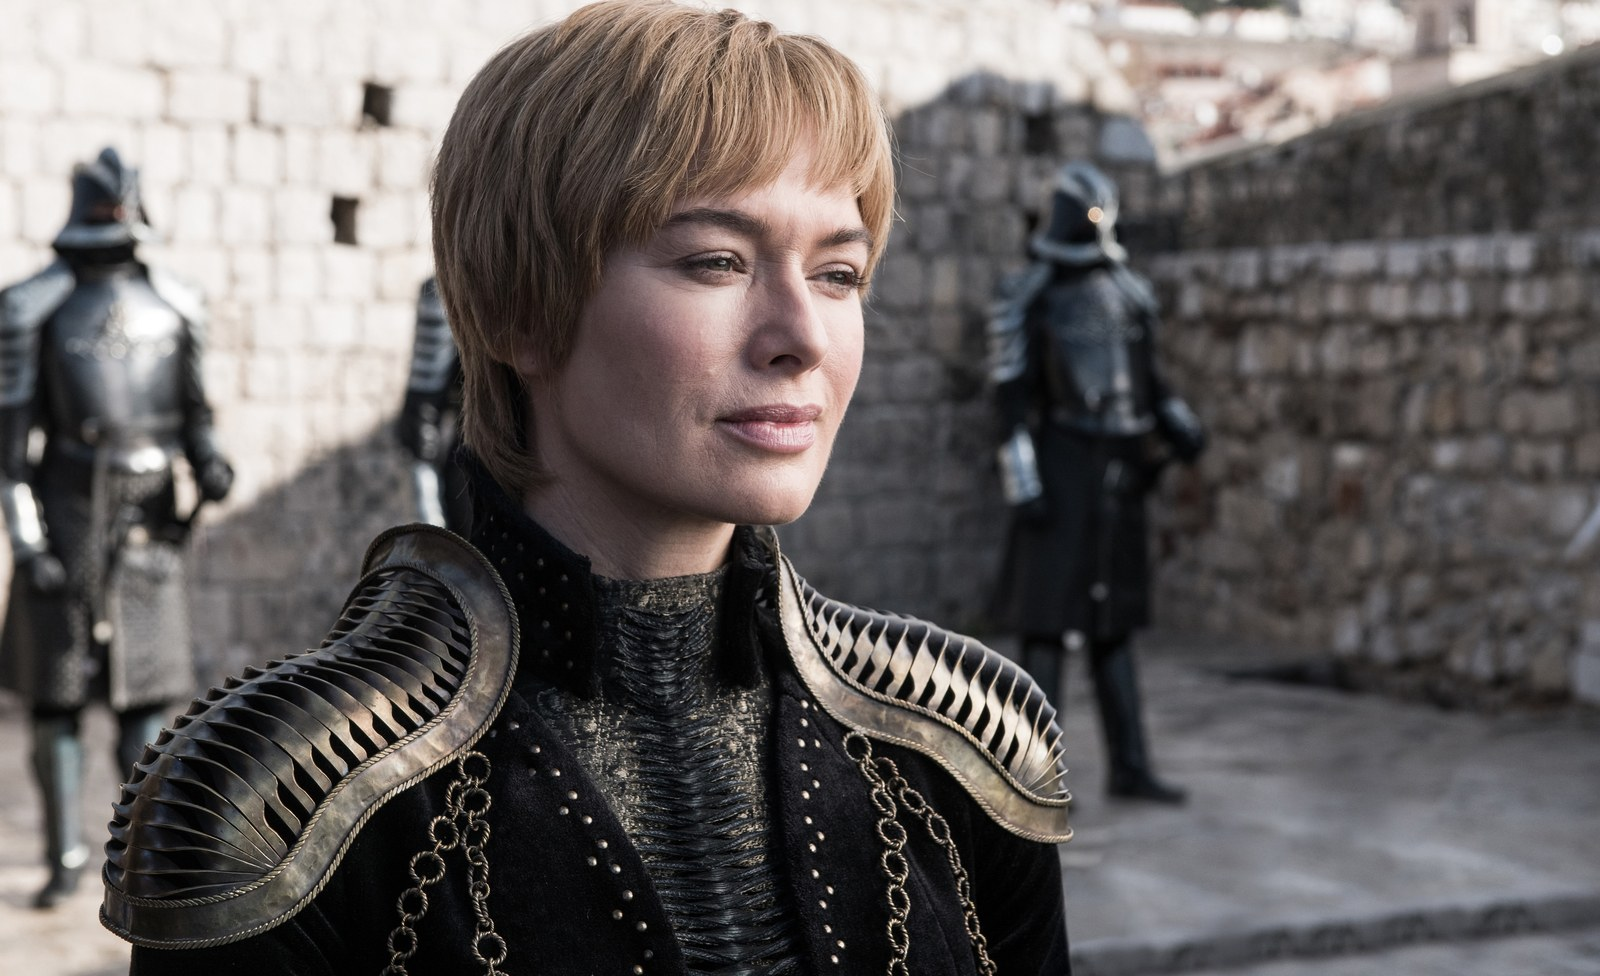 Lena Headey as Cersei on Game of Thrones.